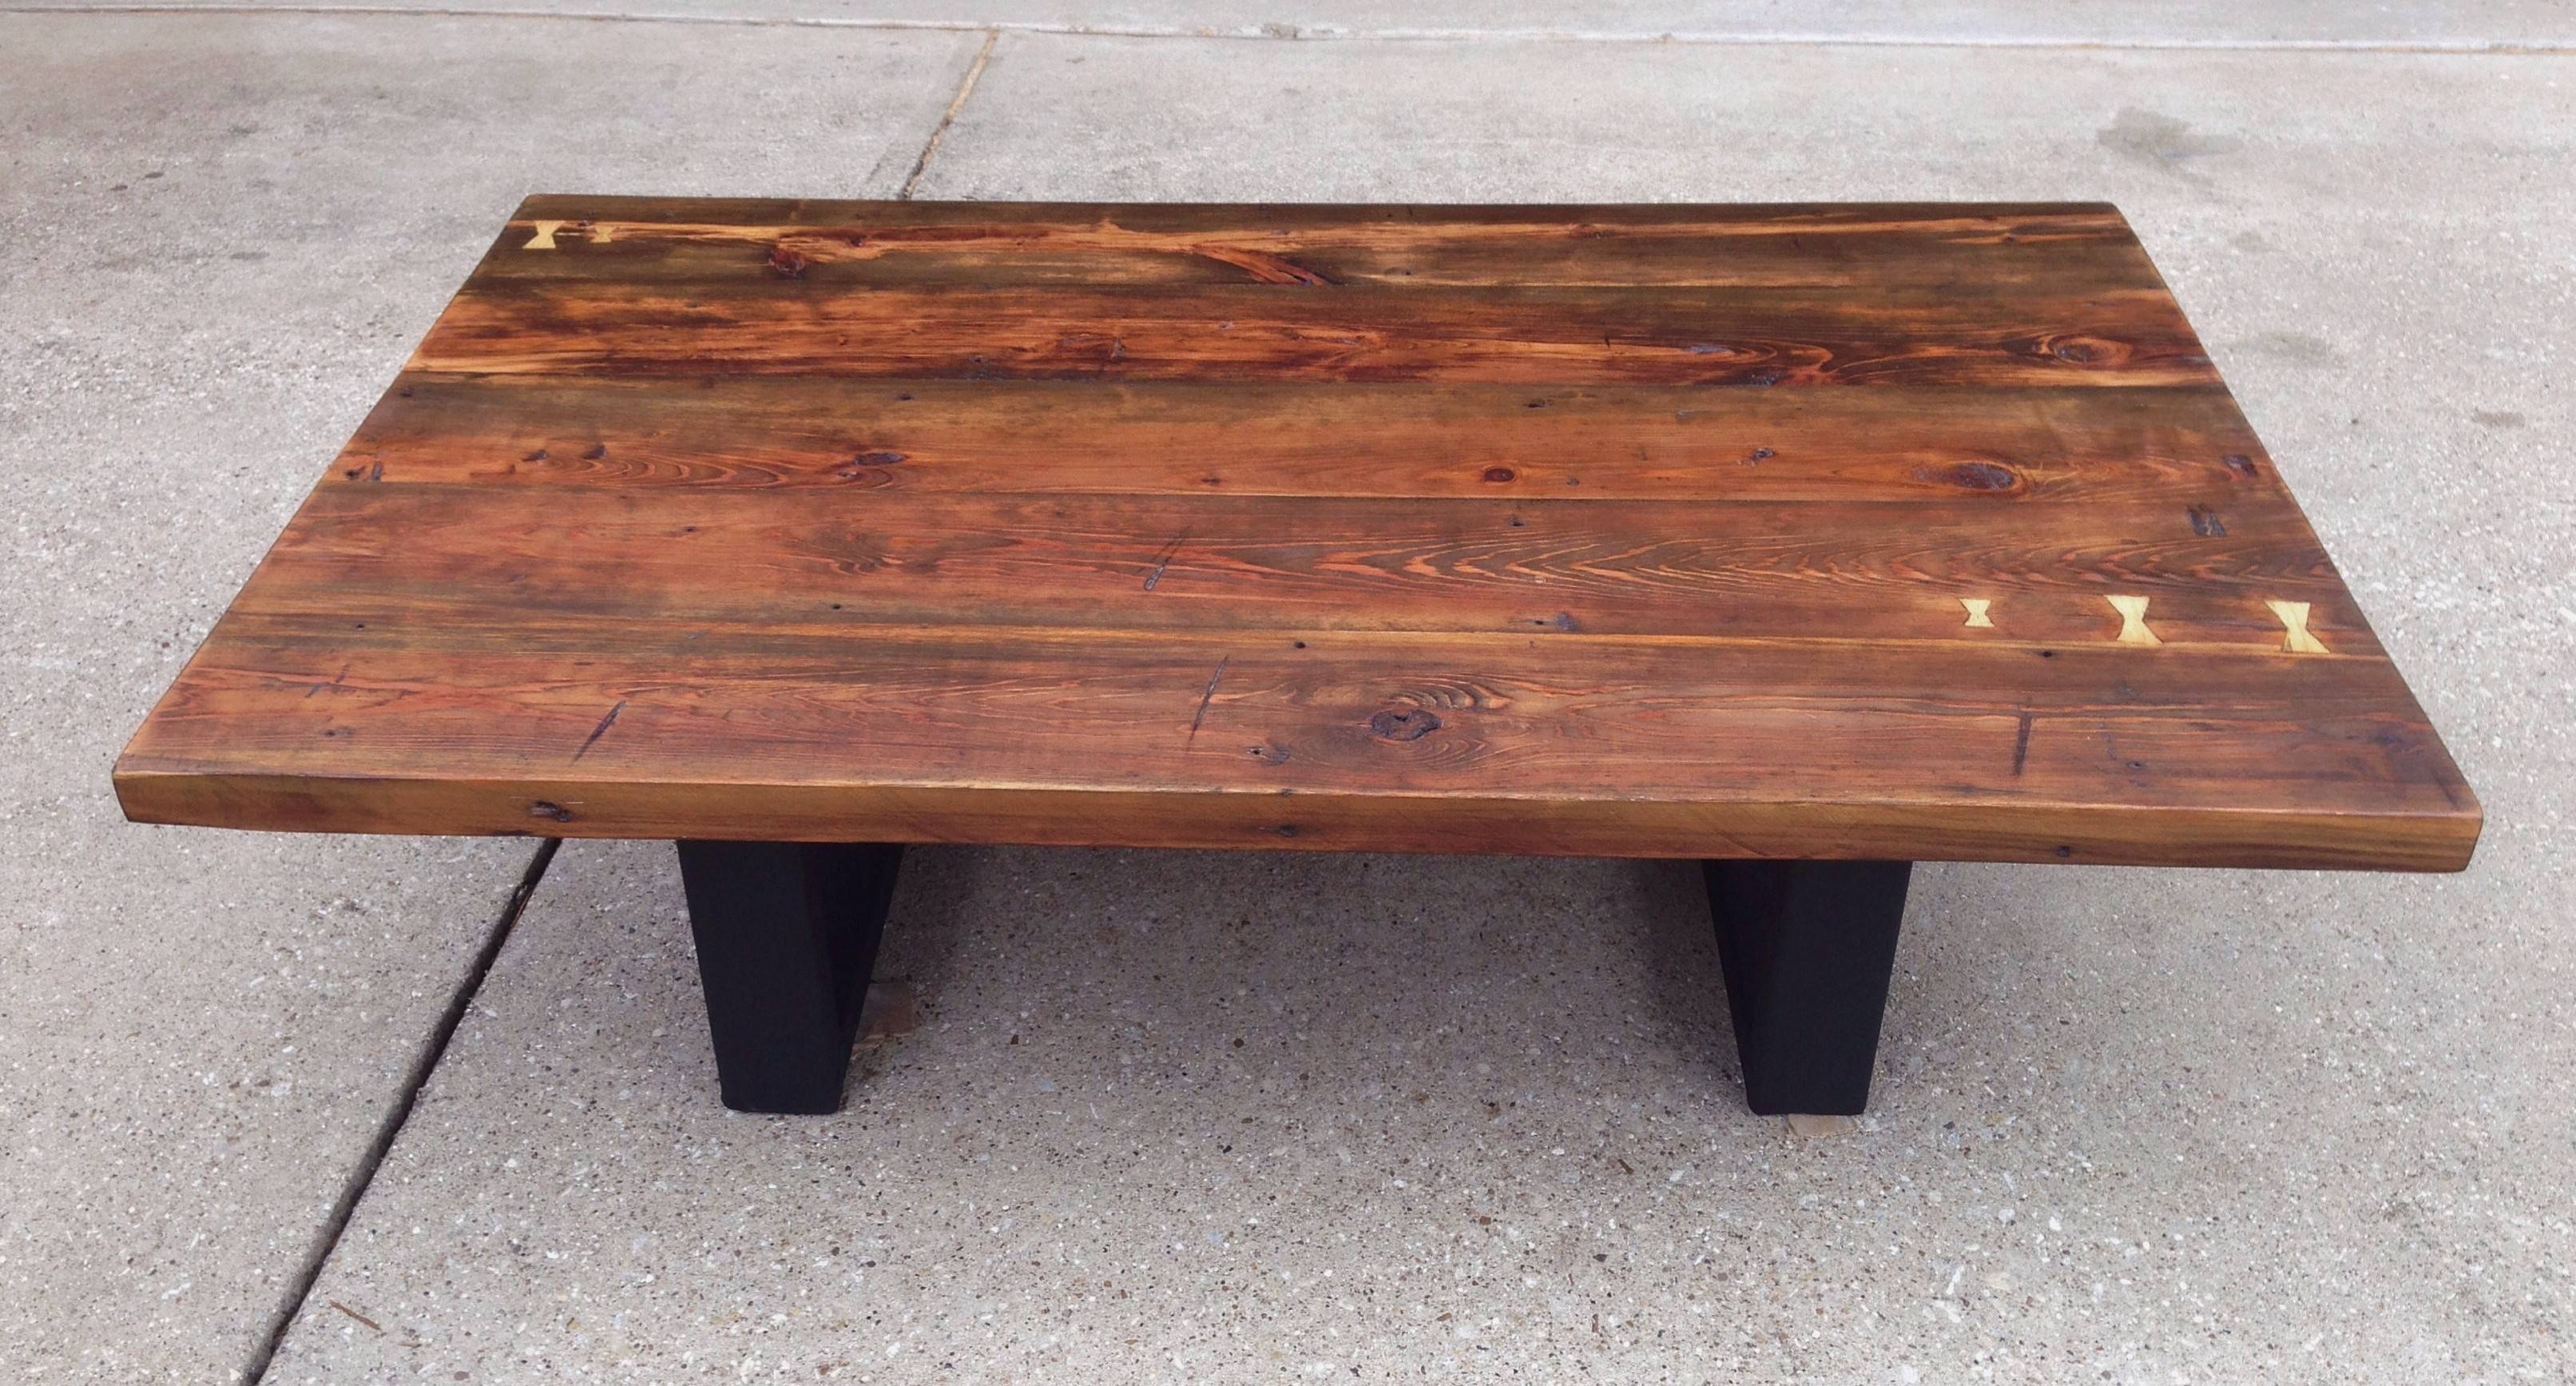 Reclaimed Southern Yellow Pine Coffee Table | The Grain. intended for Pine Coffee Tables (Image 23 of 30)